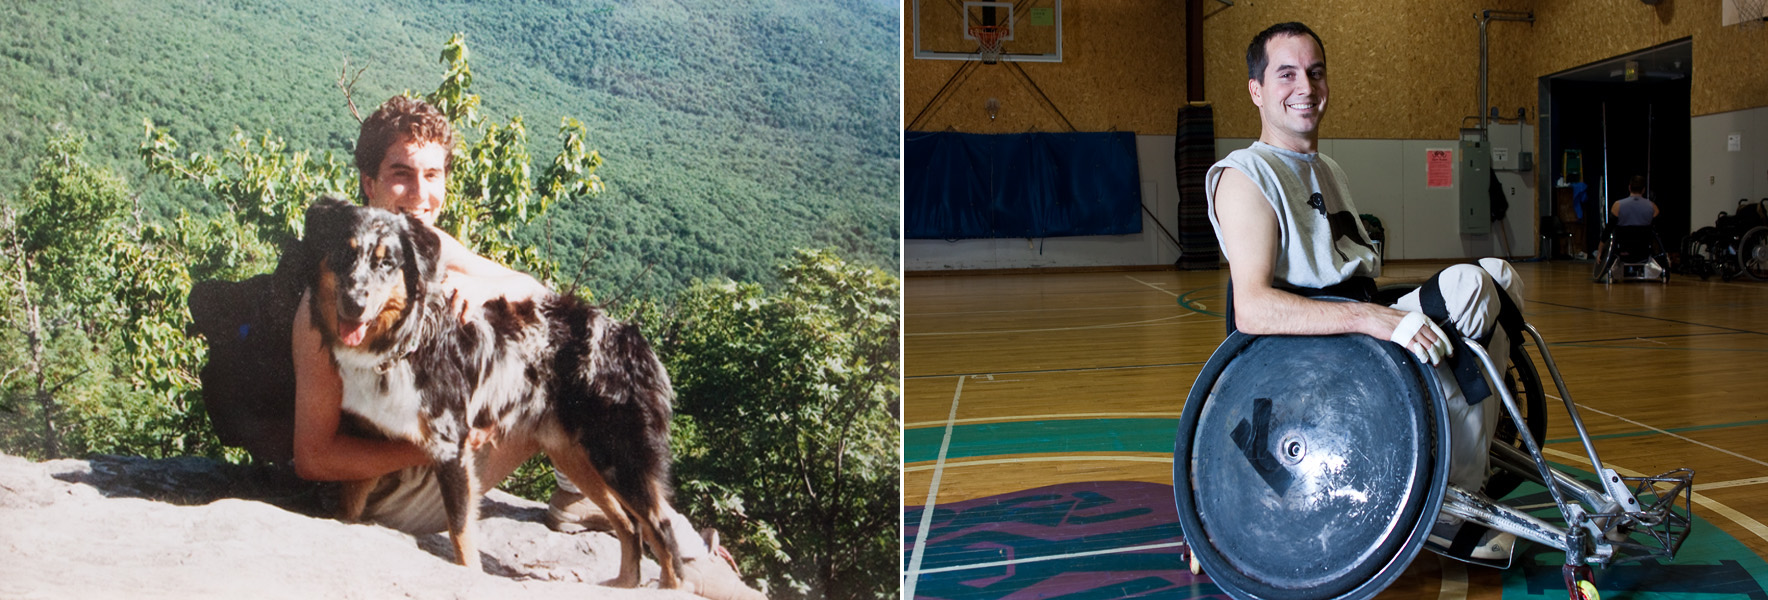 Max Woodbury, past and present. Left, Woodbury hiking in Vermont during his college years spent on the East Coast. One year after moving to Portland, OR in 1995 Max fell off of a scaffolding at work, breaking his neck and leaving him paralyzed.